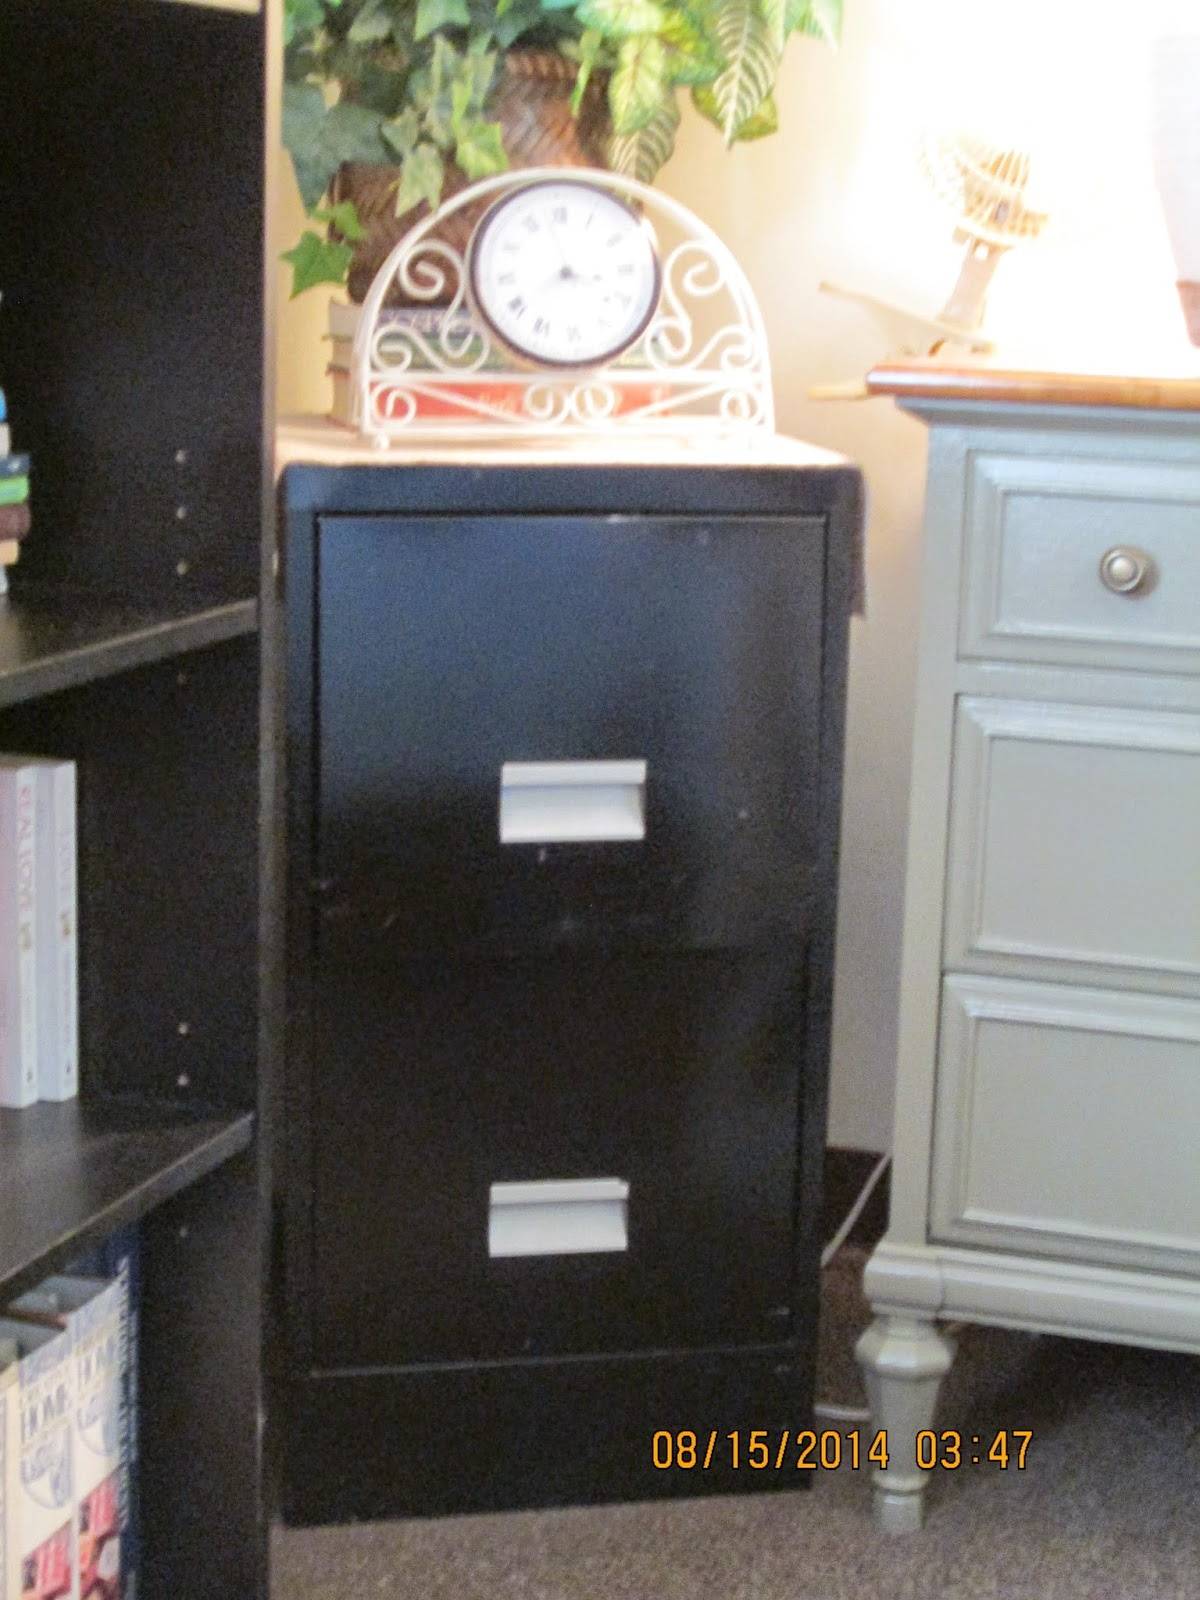 millie's: Redecorating An Old File Cabinet With Contact Paper